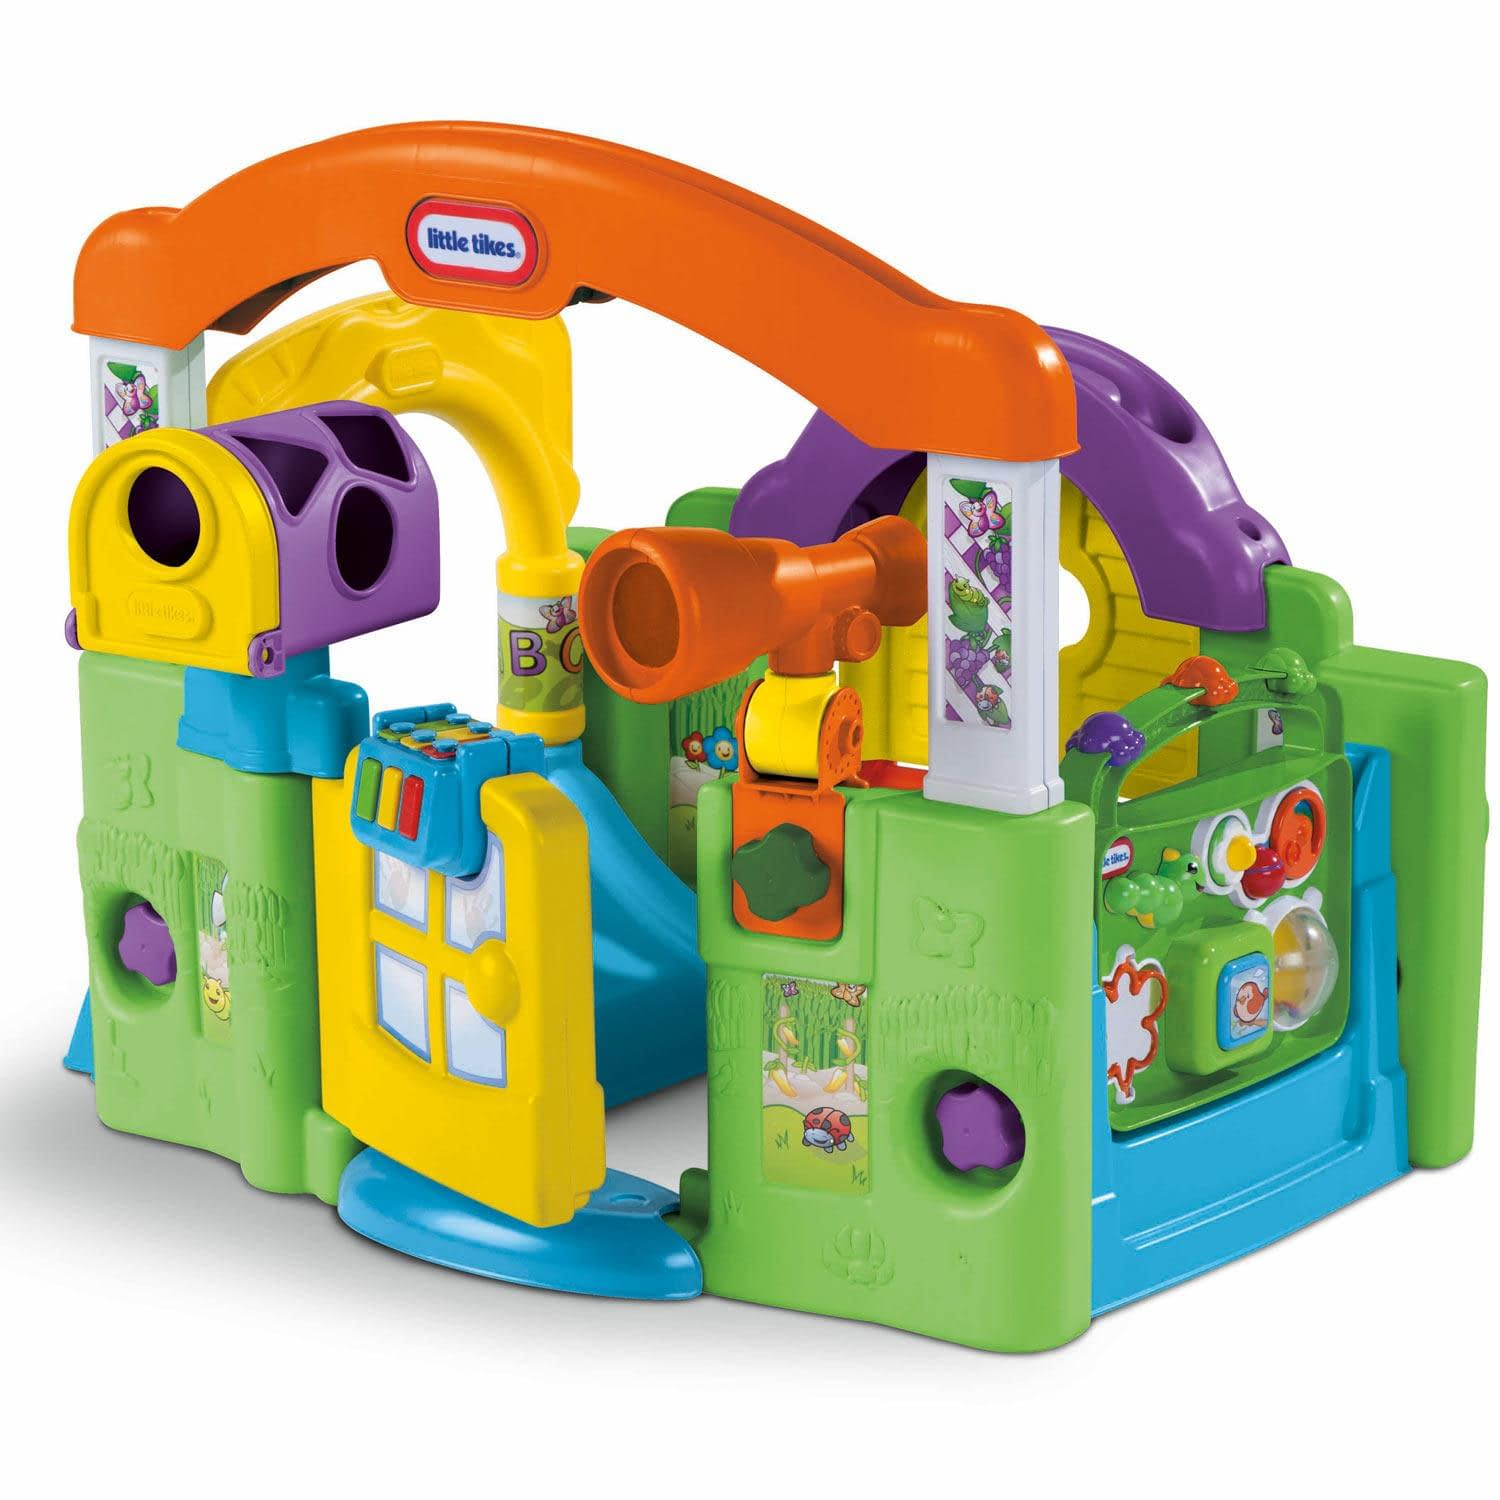 Image of Little Tikes Activity Garden Baby Playset - Recommended by Child Behavior Clinic